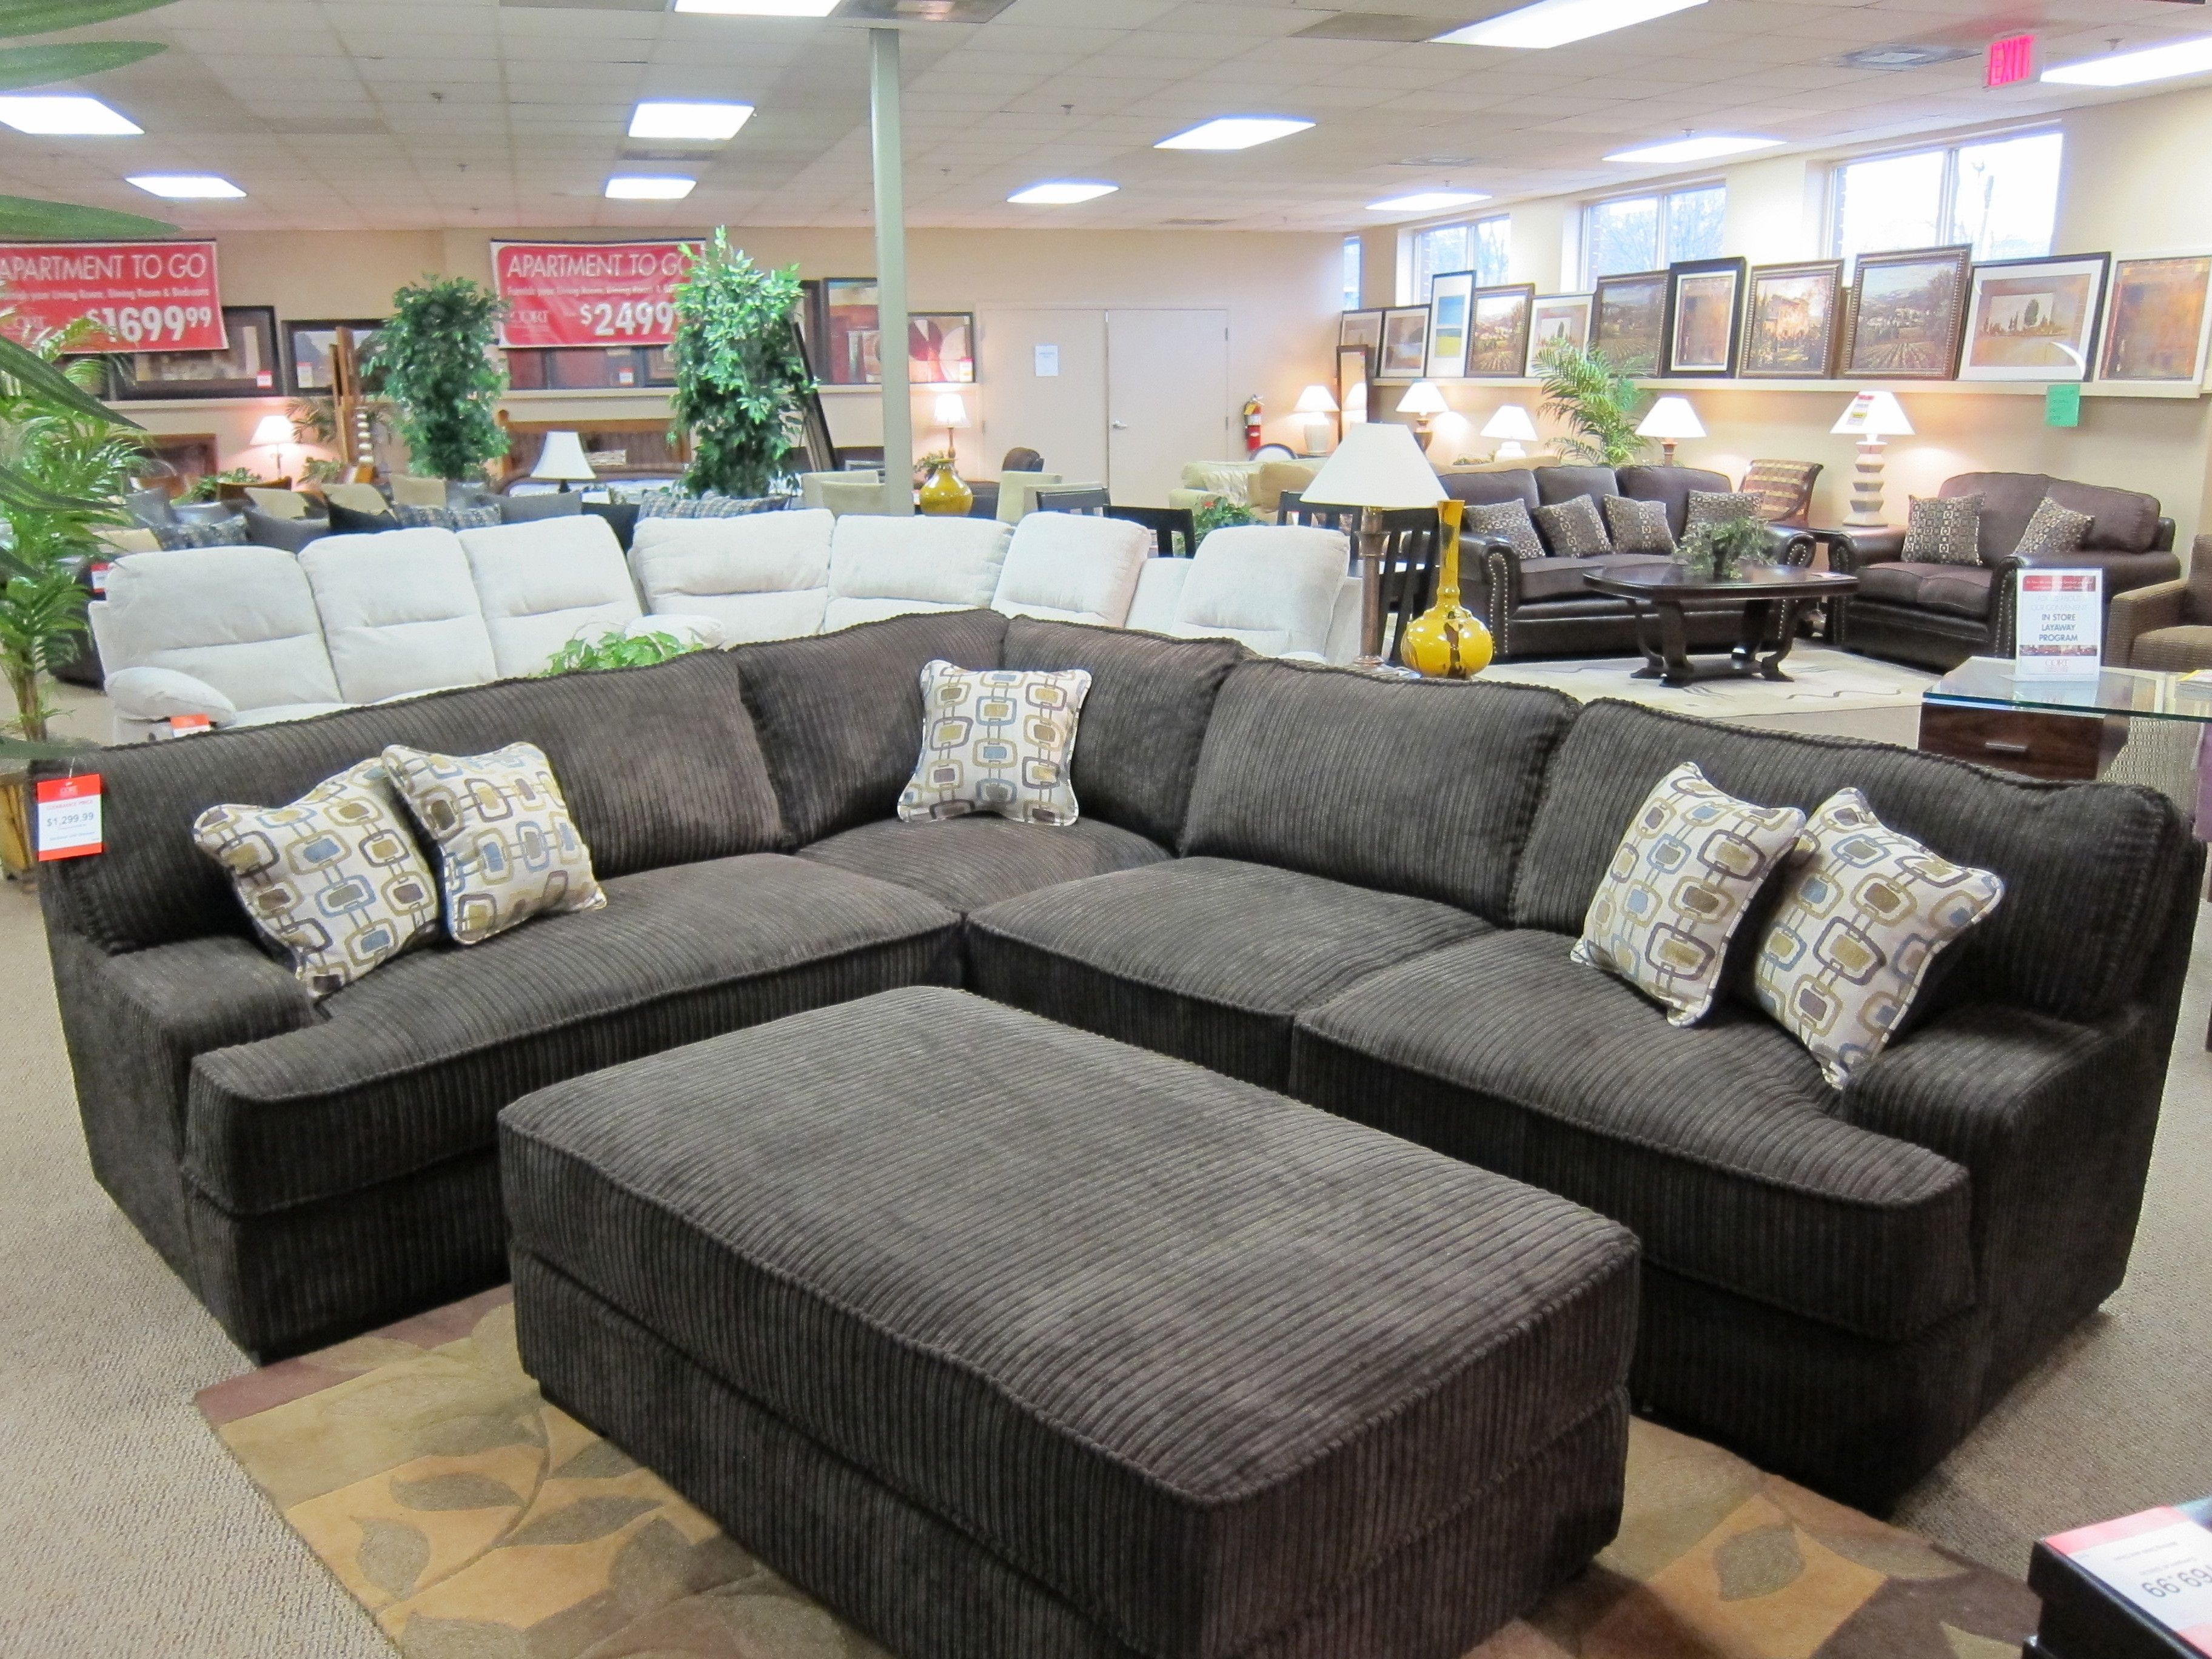 Brown Corduroy Sectional Sectional Sofas Living Room Sectional Sofa Grey Sectional Sofa